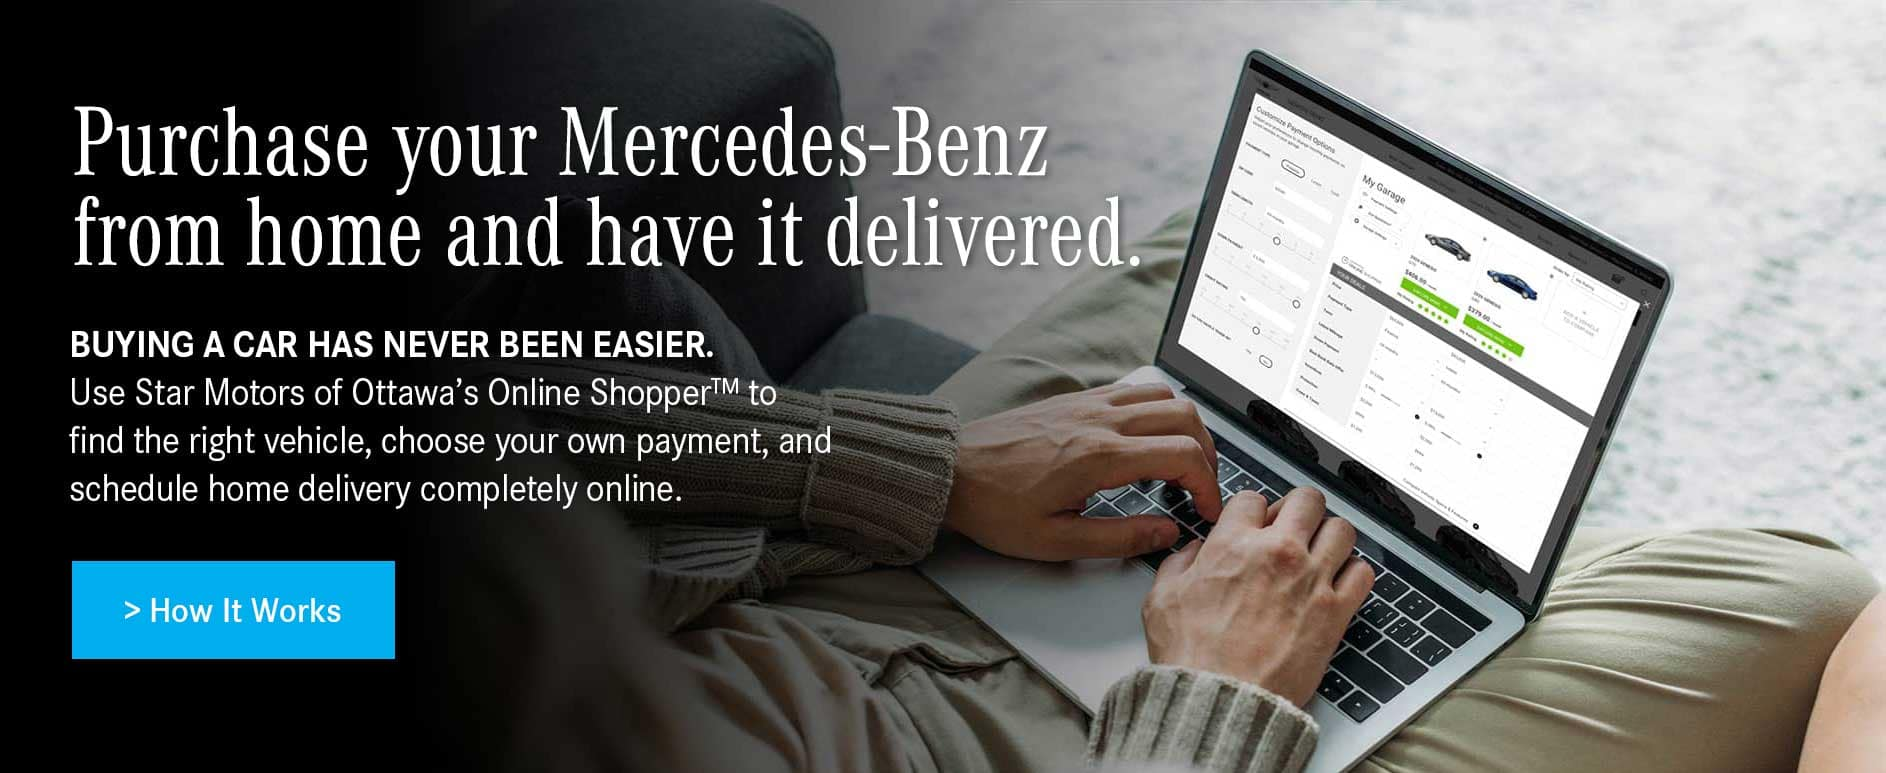 Purchase your Mercedes-Benz online.